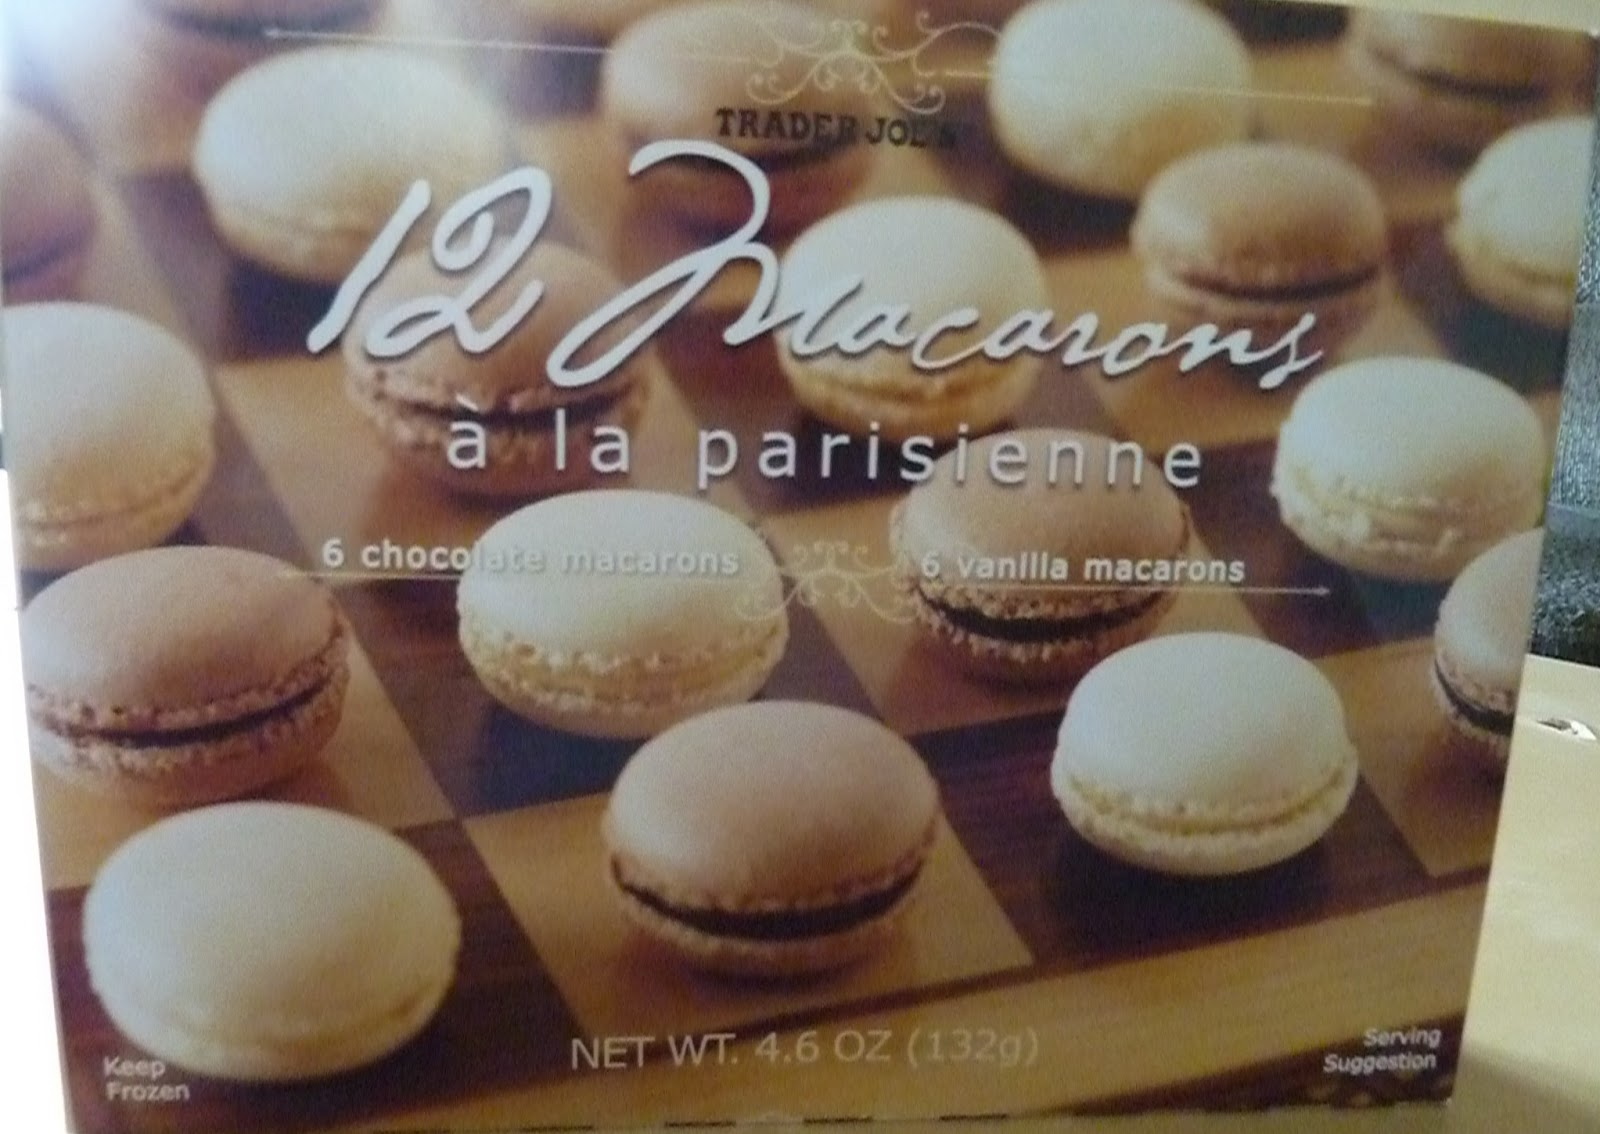 What S Good At Trader Joe S Trader Joe S 12 Macarons A La Parisienne